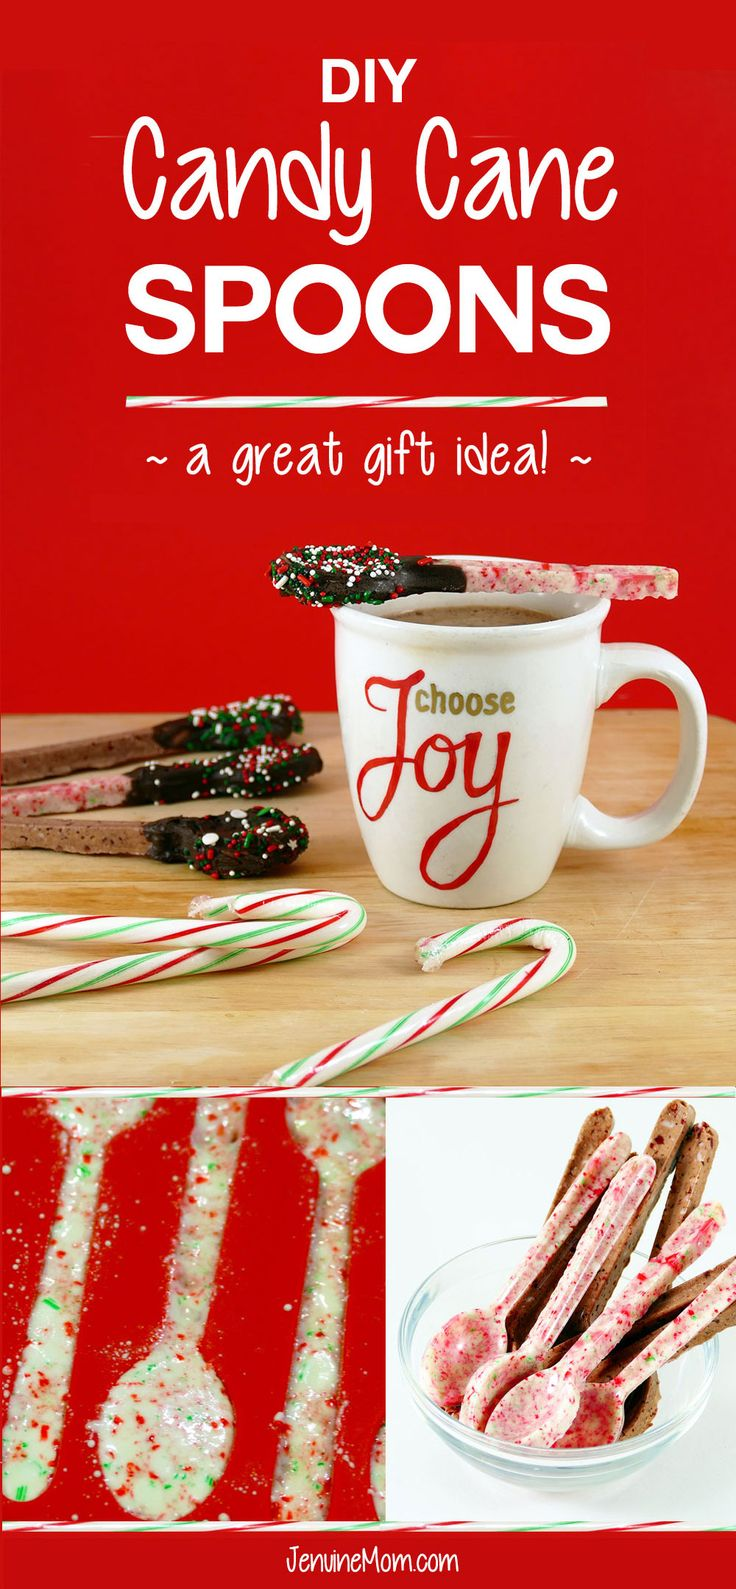 DIY Candy Cane Spoons | Great DIY Christmas Gifts! | handmade holiday present